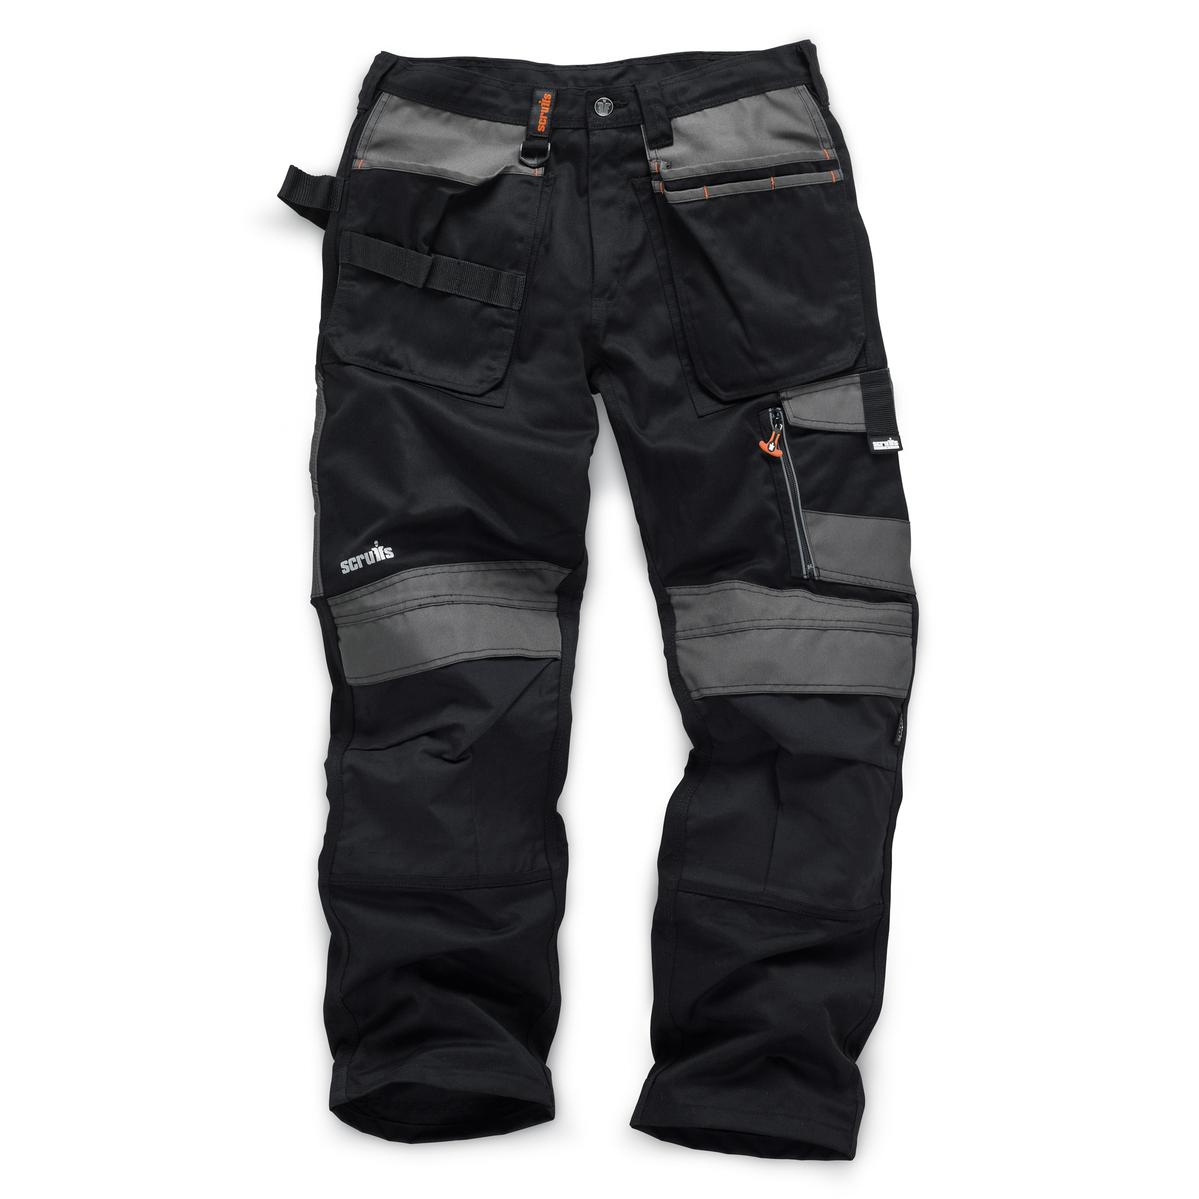 3d Trade Trousers Hardwearing Work Trousers With Cordura